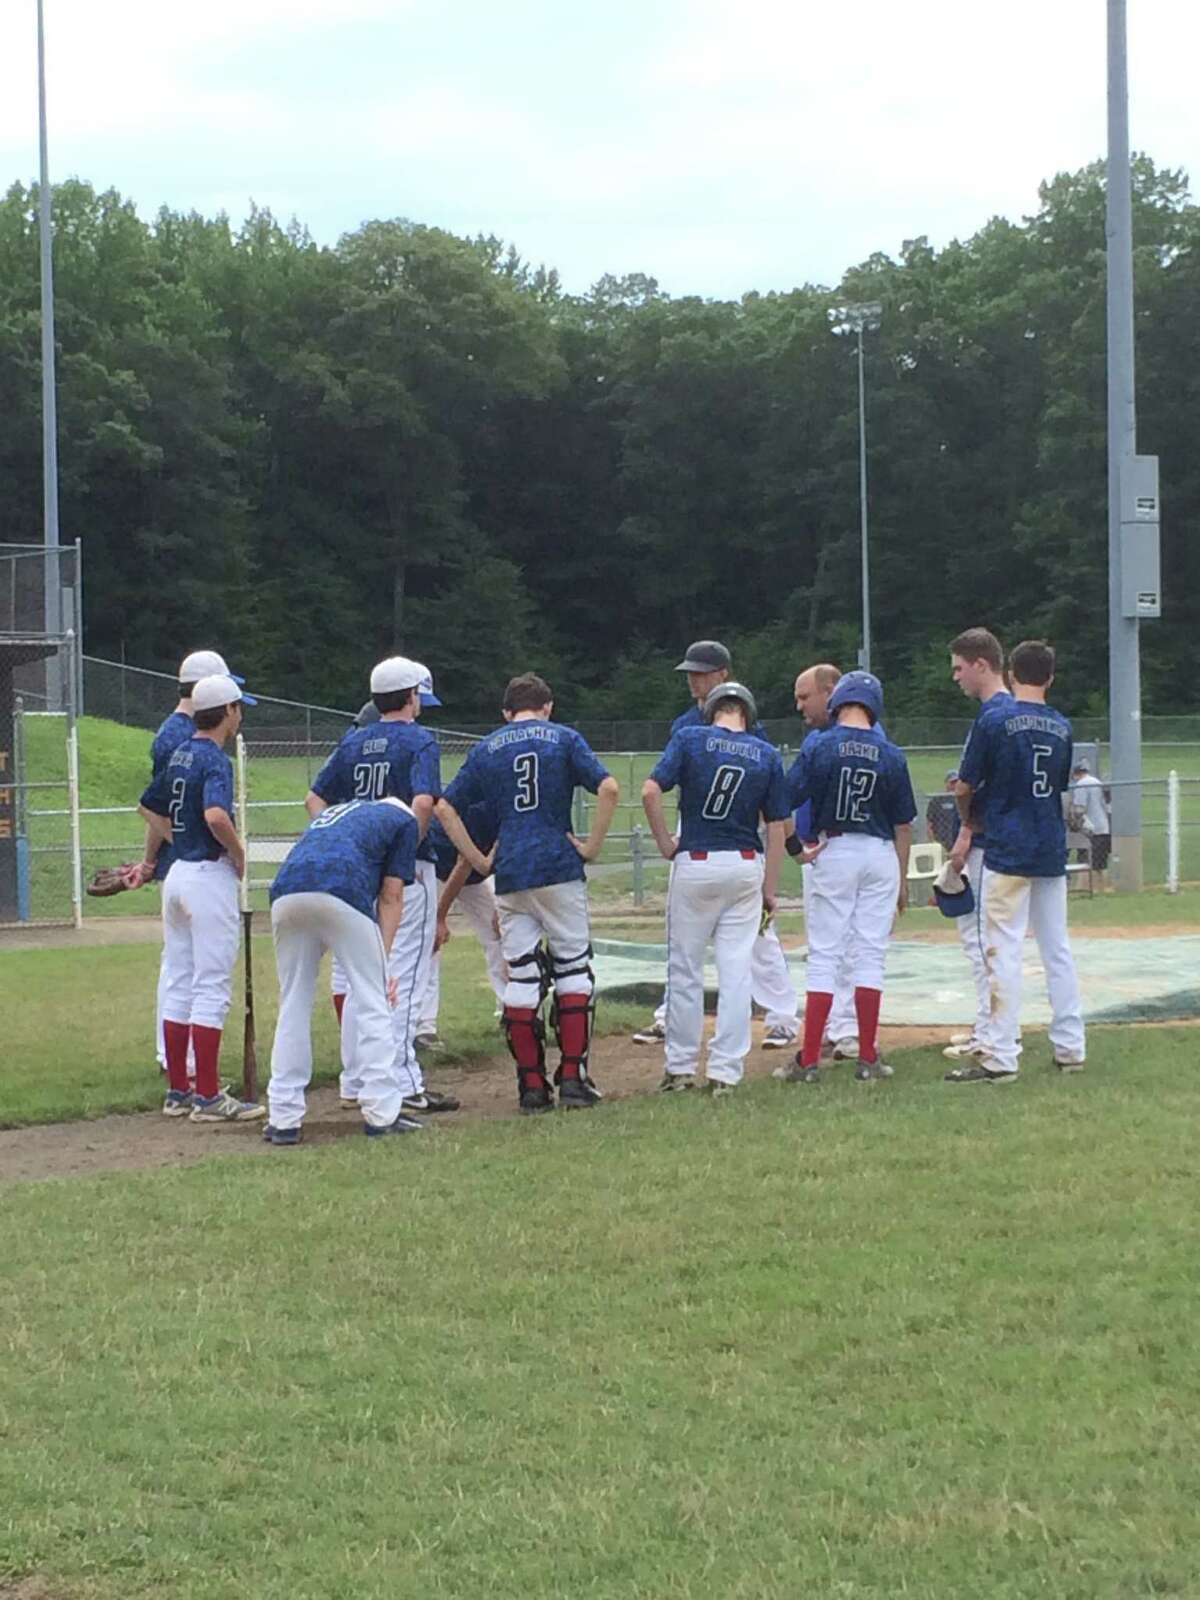 The Darien-New Canaan Junior Legion baseball team stands with coaches Michael Patrona and Mike Alfieri after its final game of the 2014 season, a 1-0 loss at first-place Trumbull on Saturday, July 19.